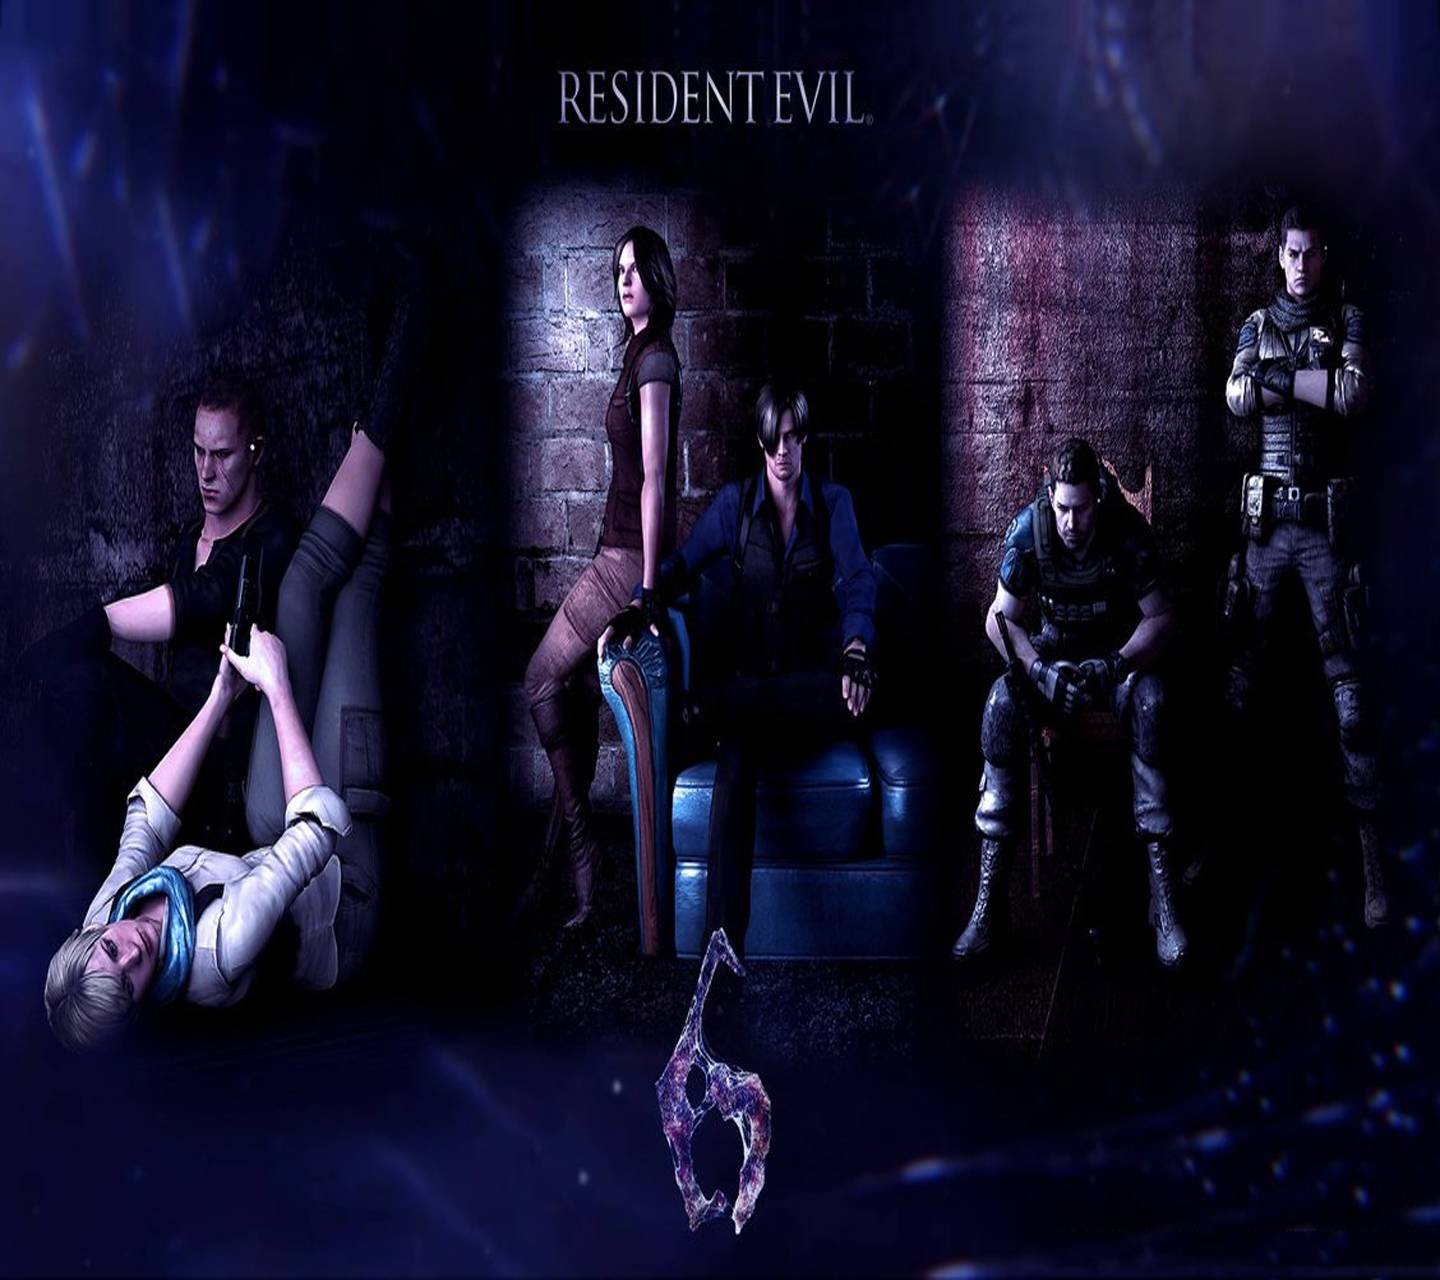 Resident Evil 6 Wallpaper By Venus 99 Free On Zedge